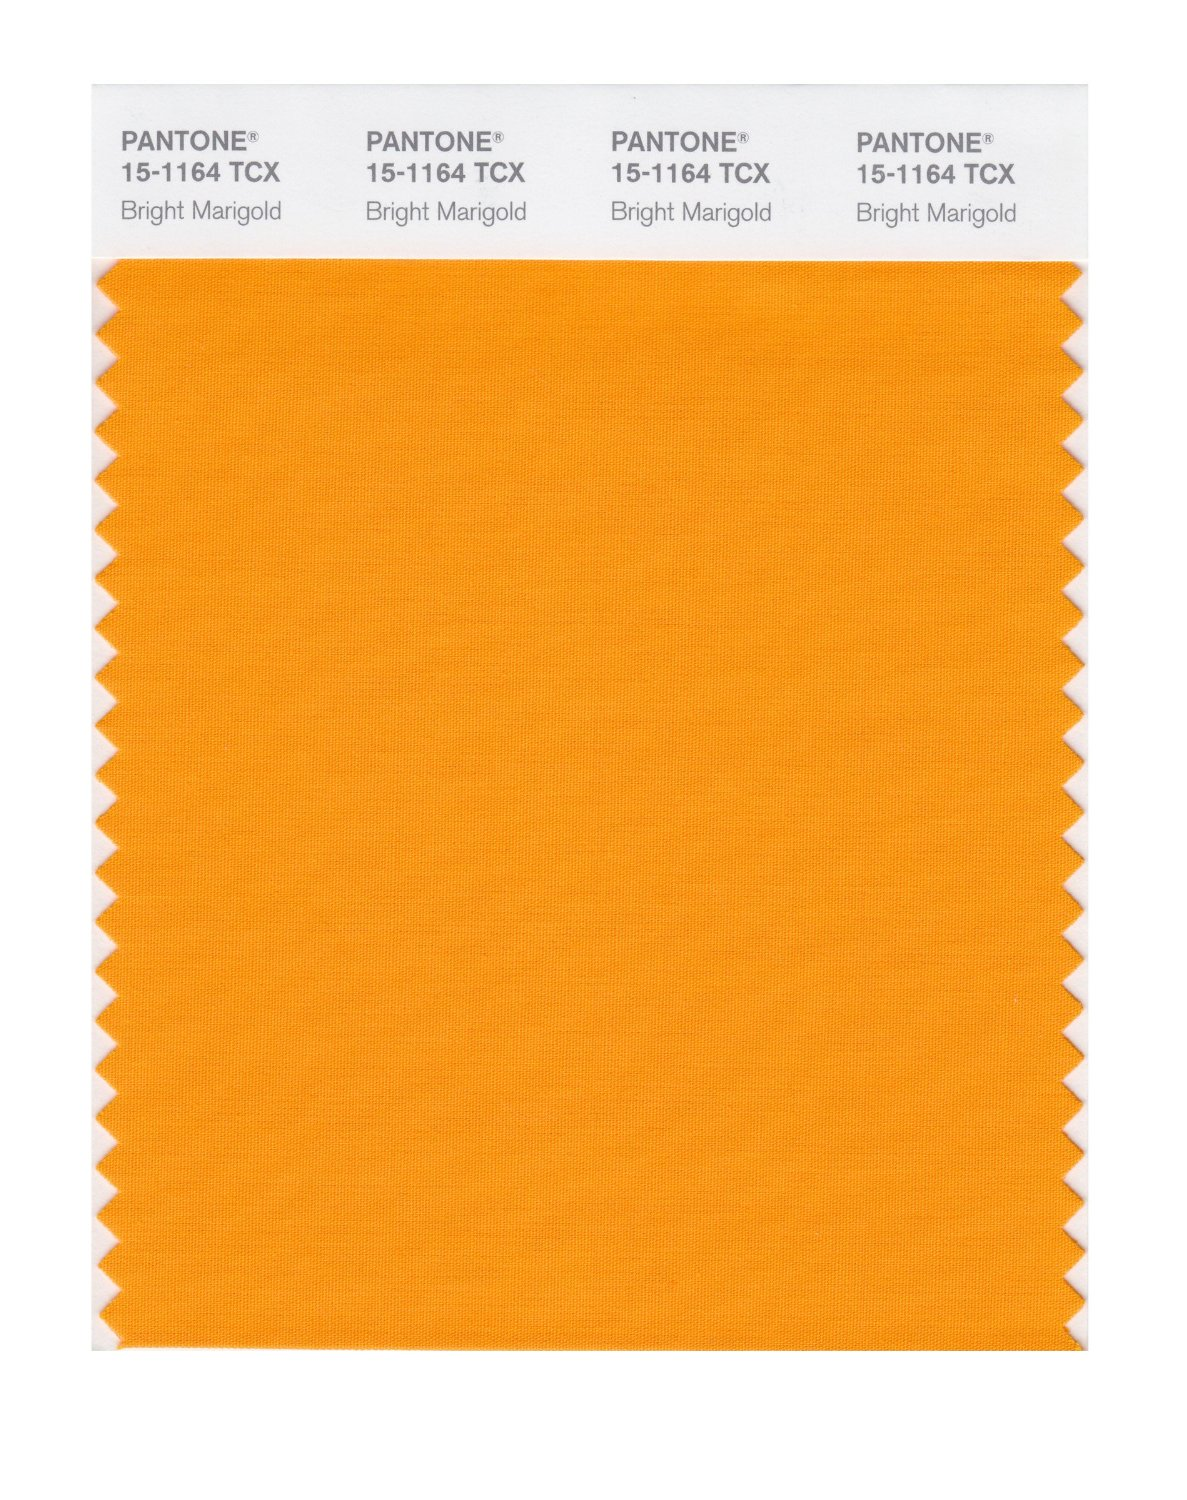 Pantone Smart Swatch 15-1164 Bright Marigold